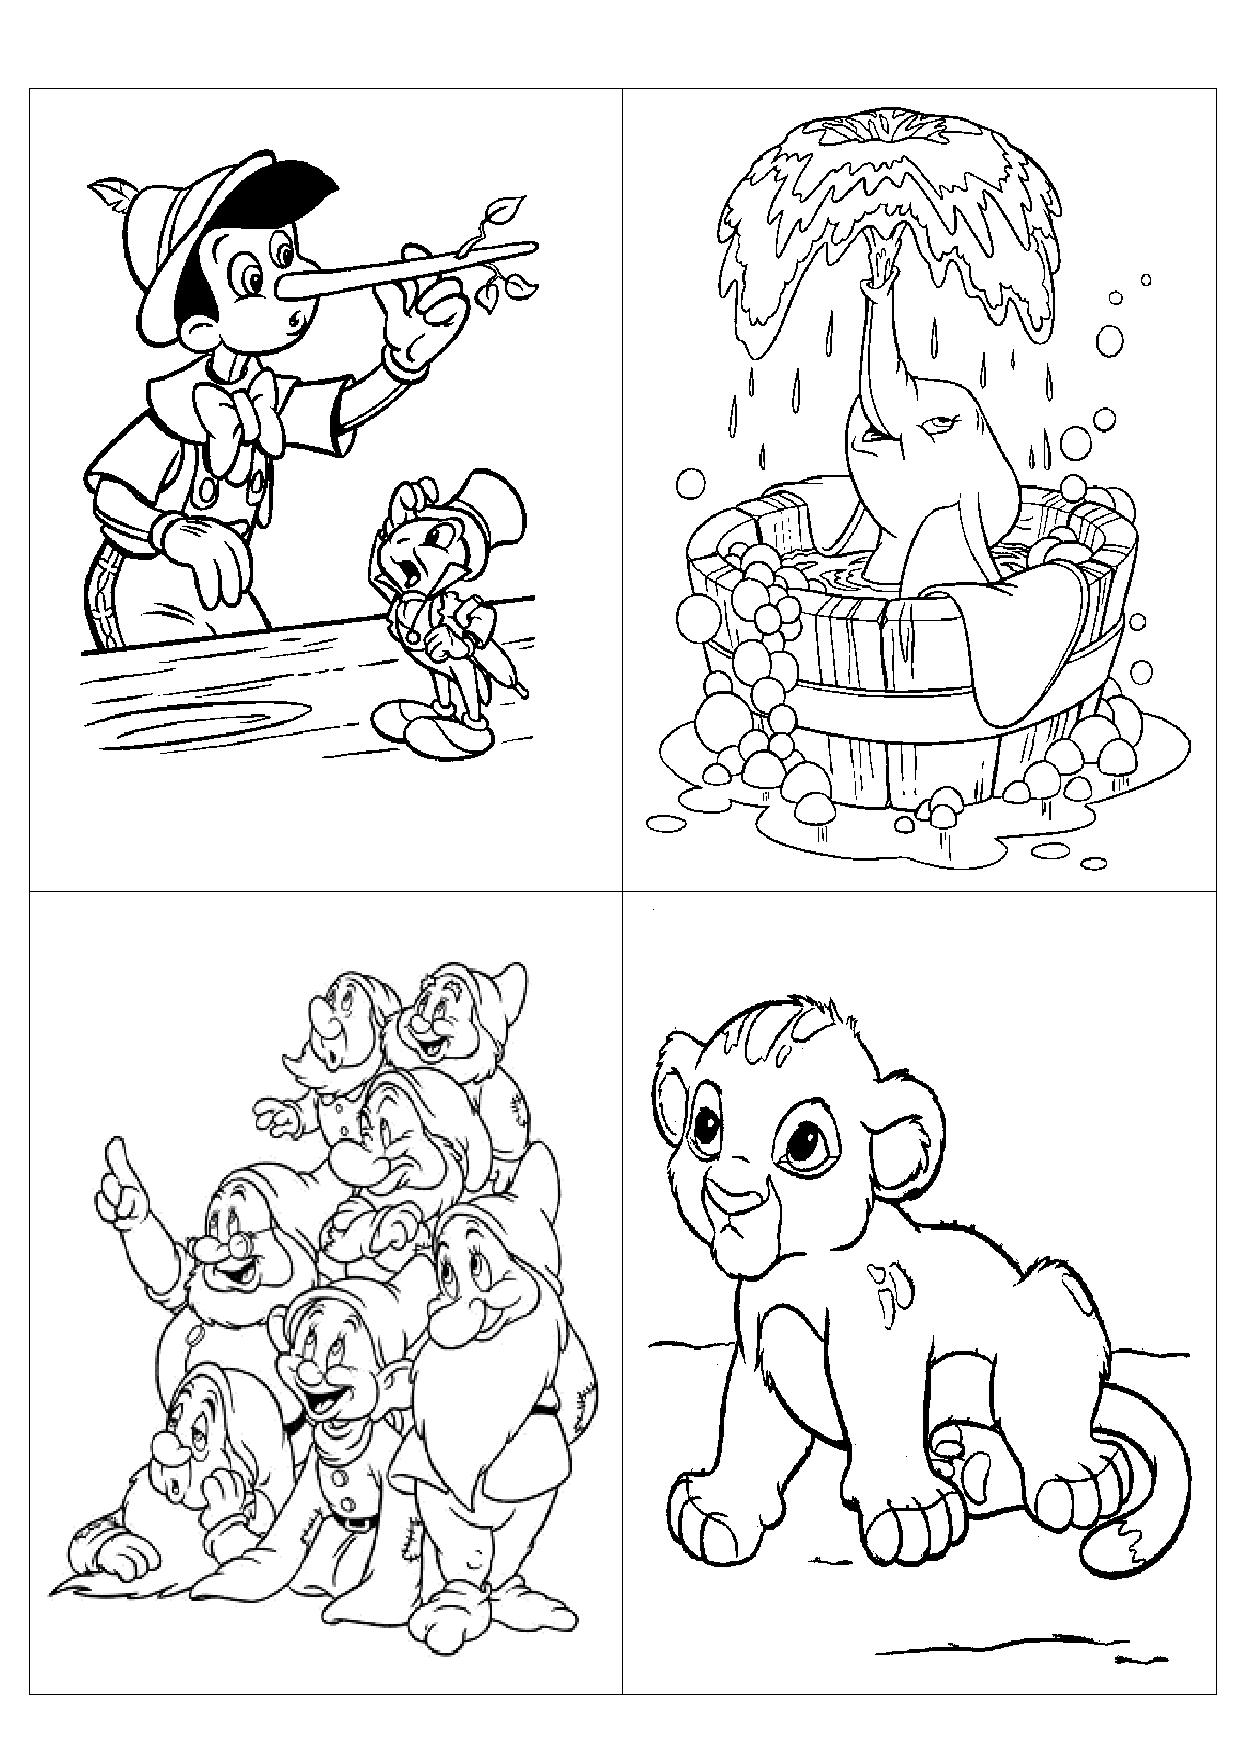 Coloriage a telecharger pdf disney - Coloriage disney ...